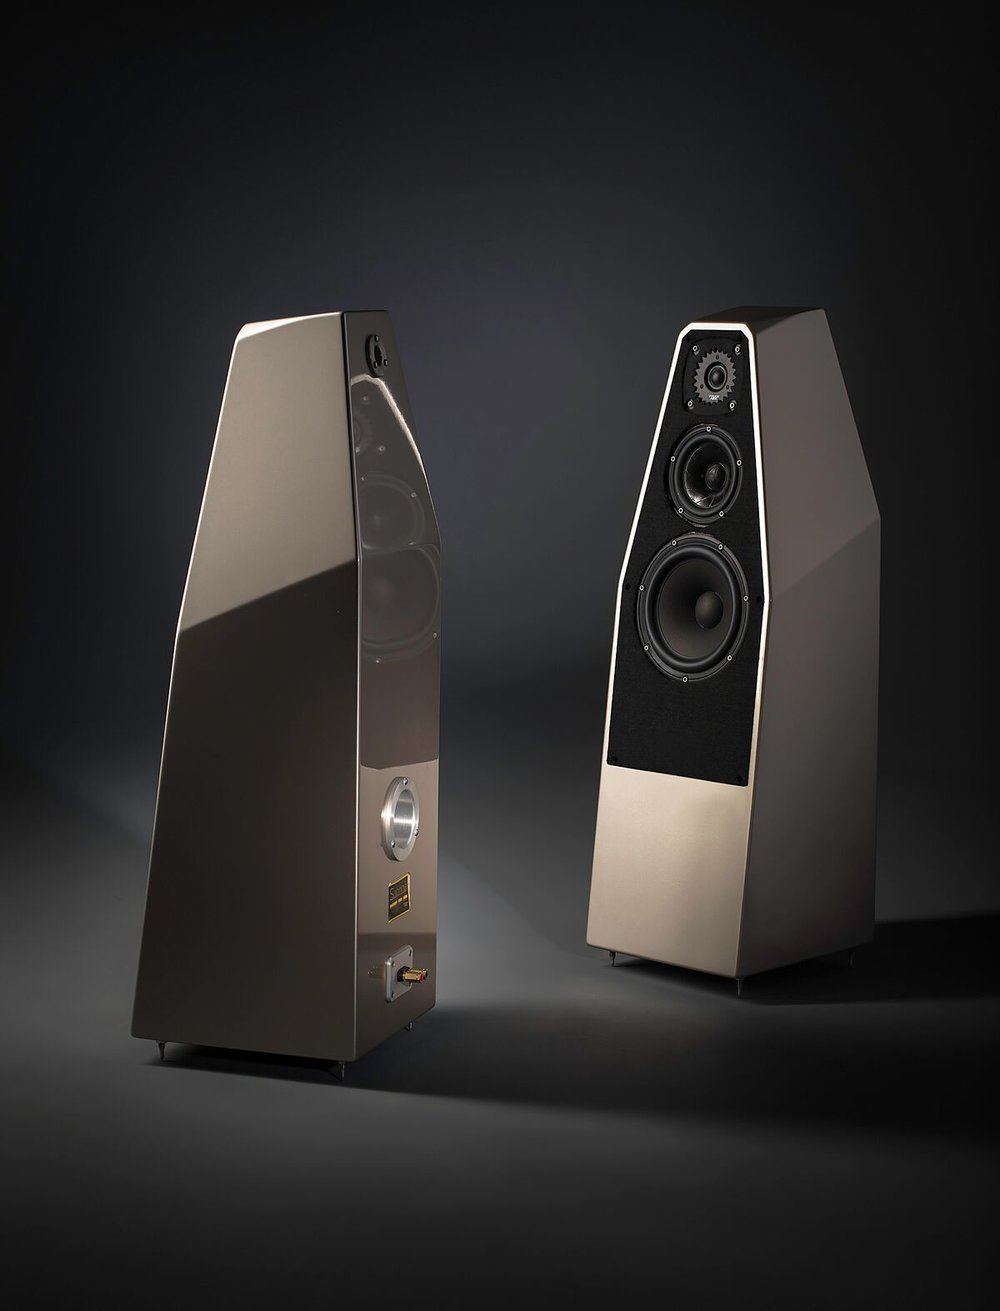 Image by Wilson Audio